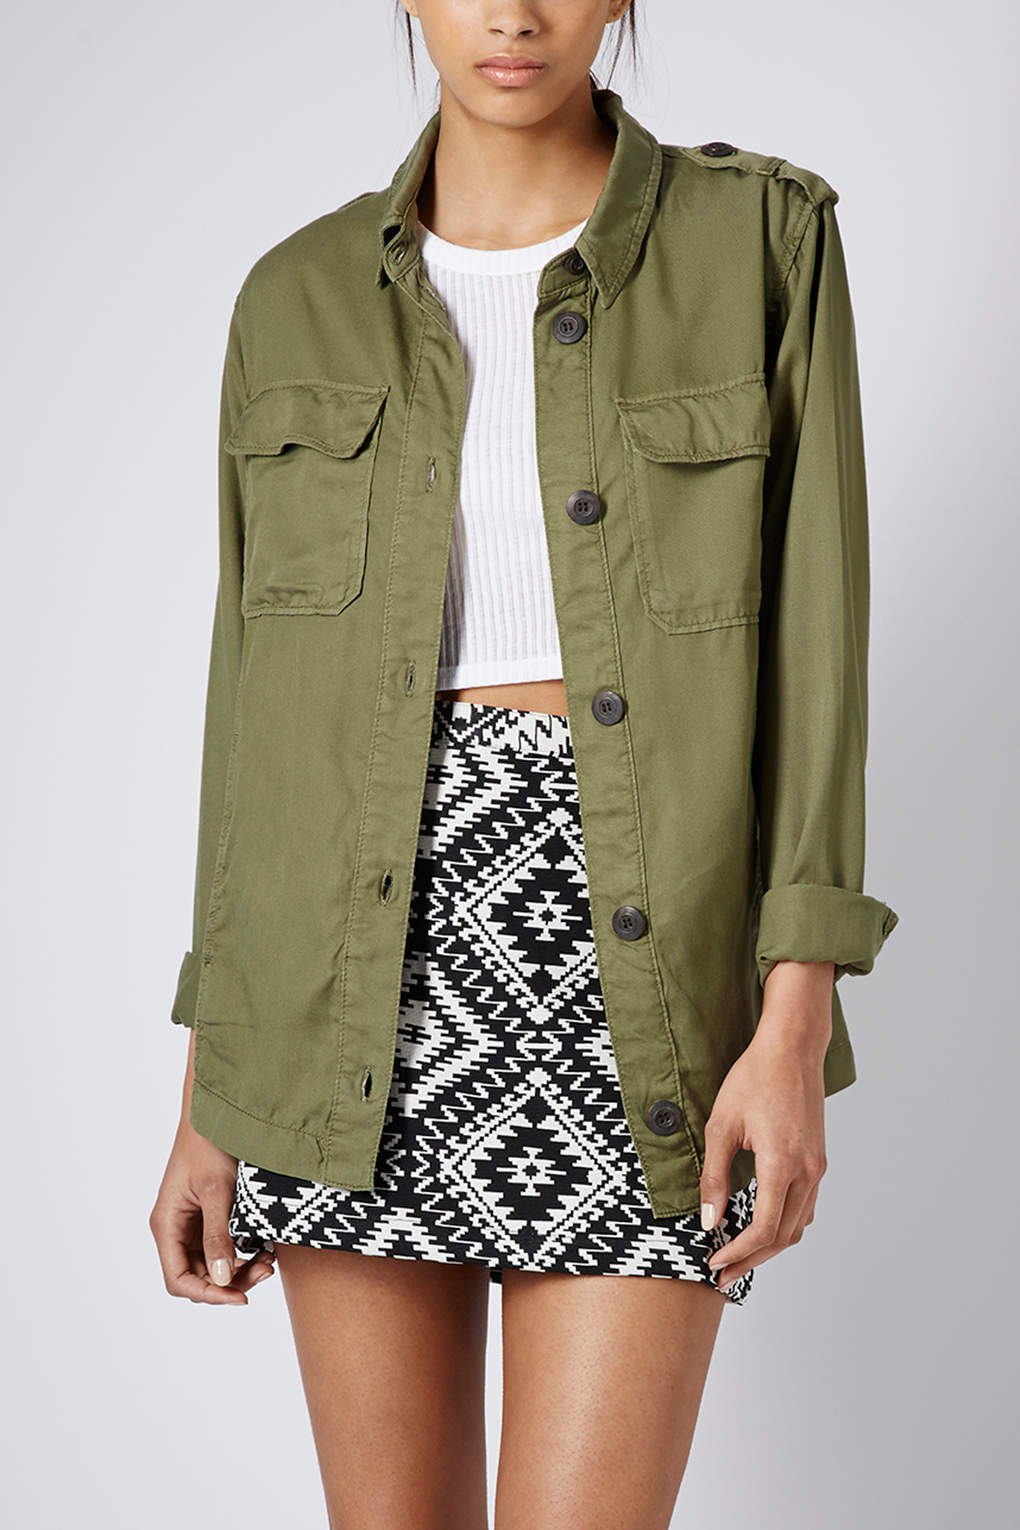 Topshop Lightweight Shirt Jacket in Natural | Lyst